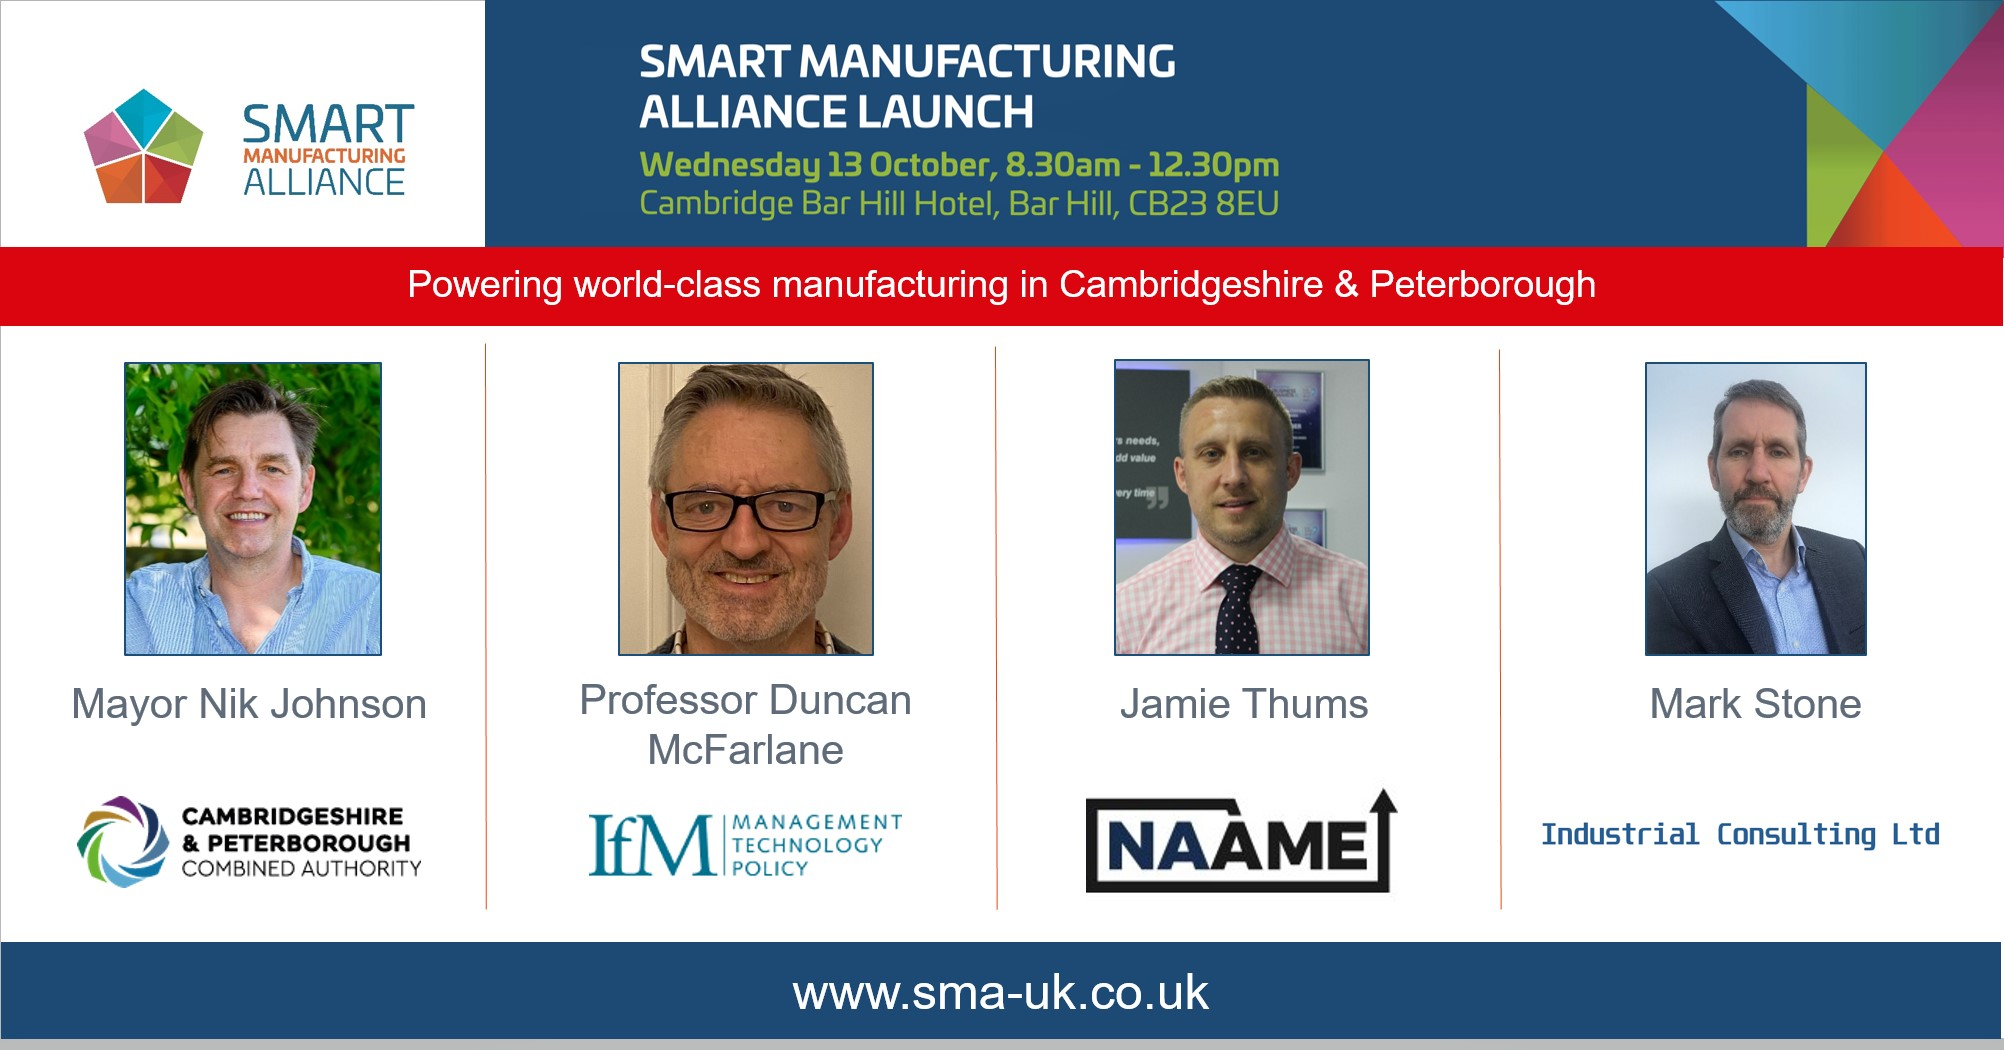 A new era for manufacturing in Cambridgeshire and Peterborough - Smart Manufacturing Alliance to launch on 13 October with support of top industry leaders